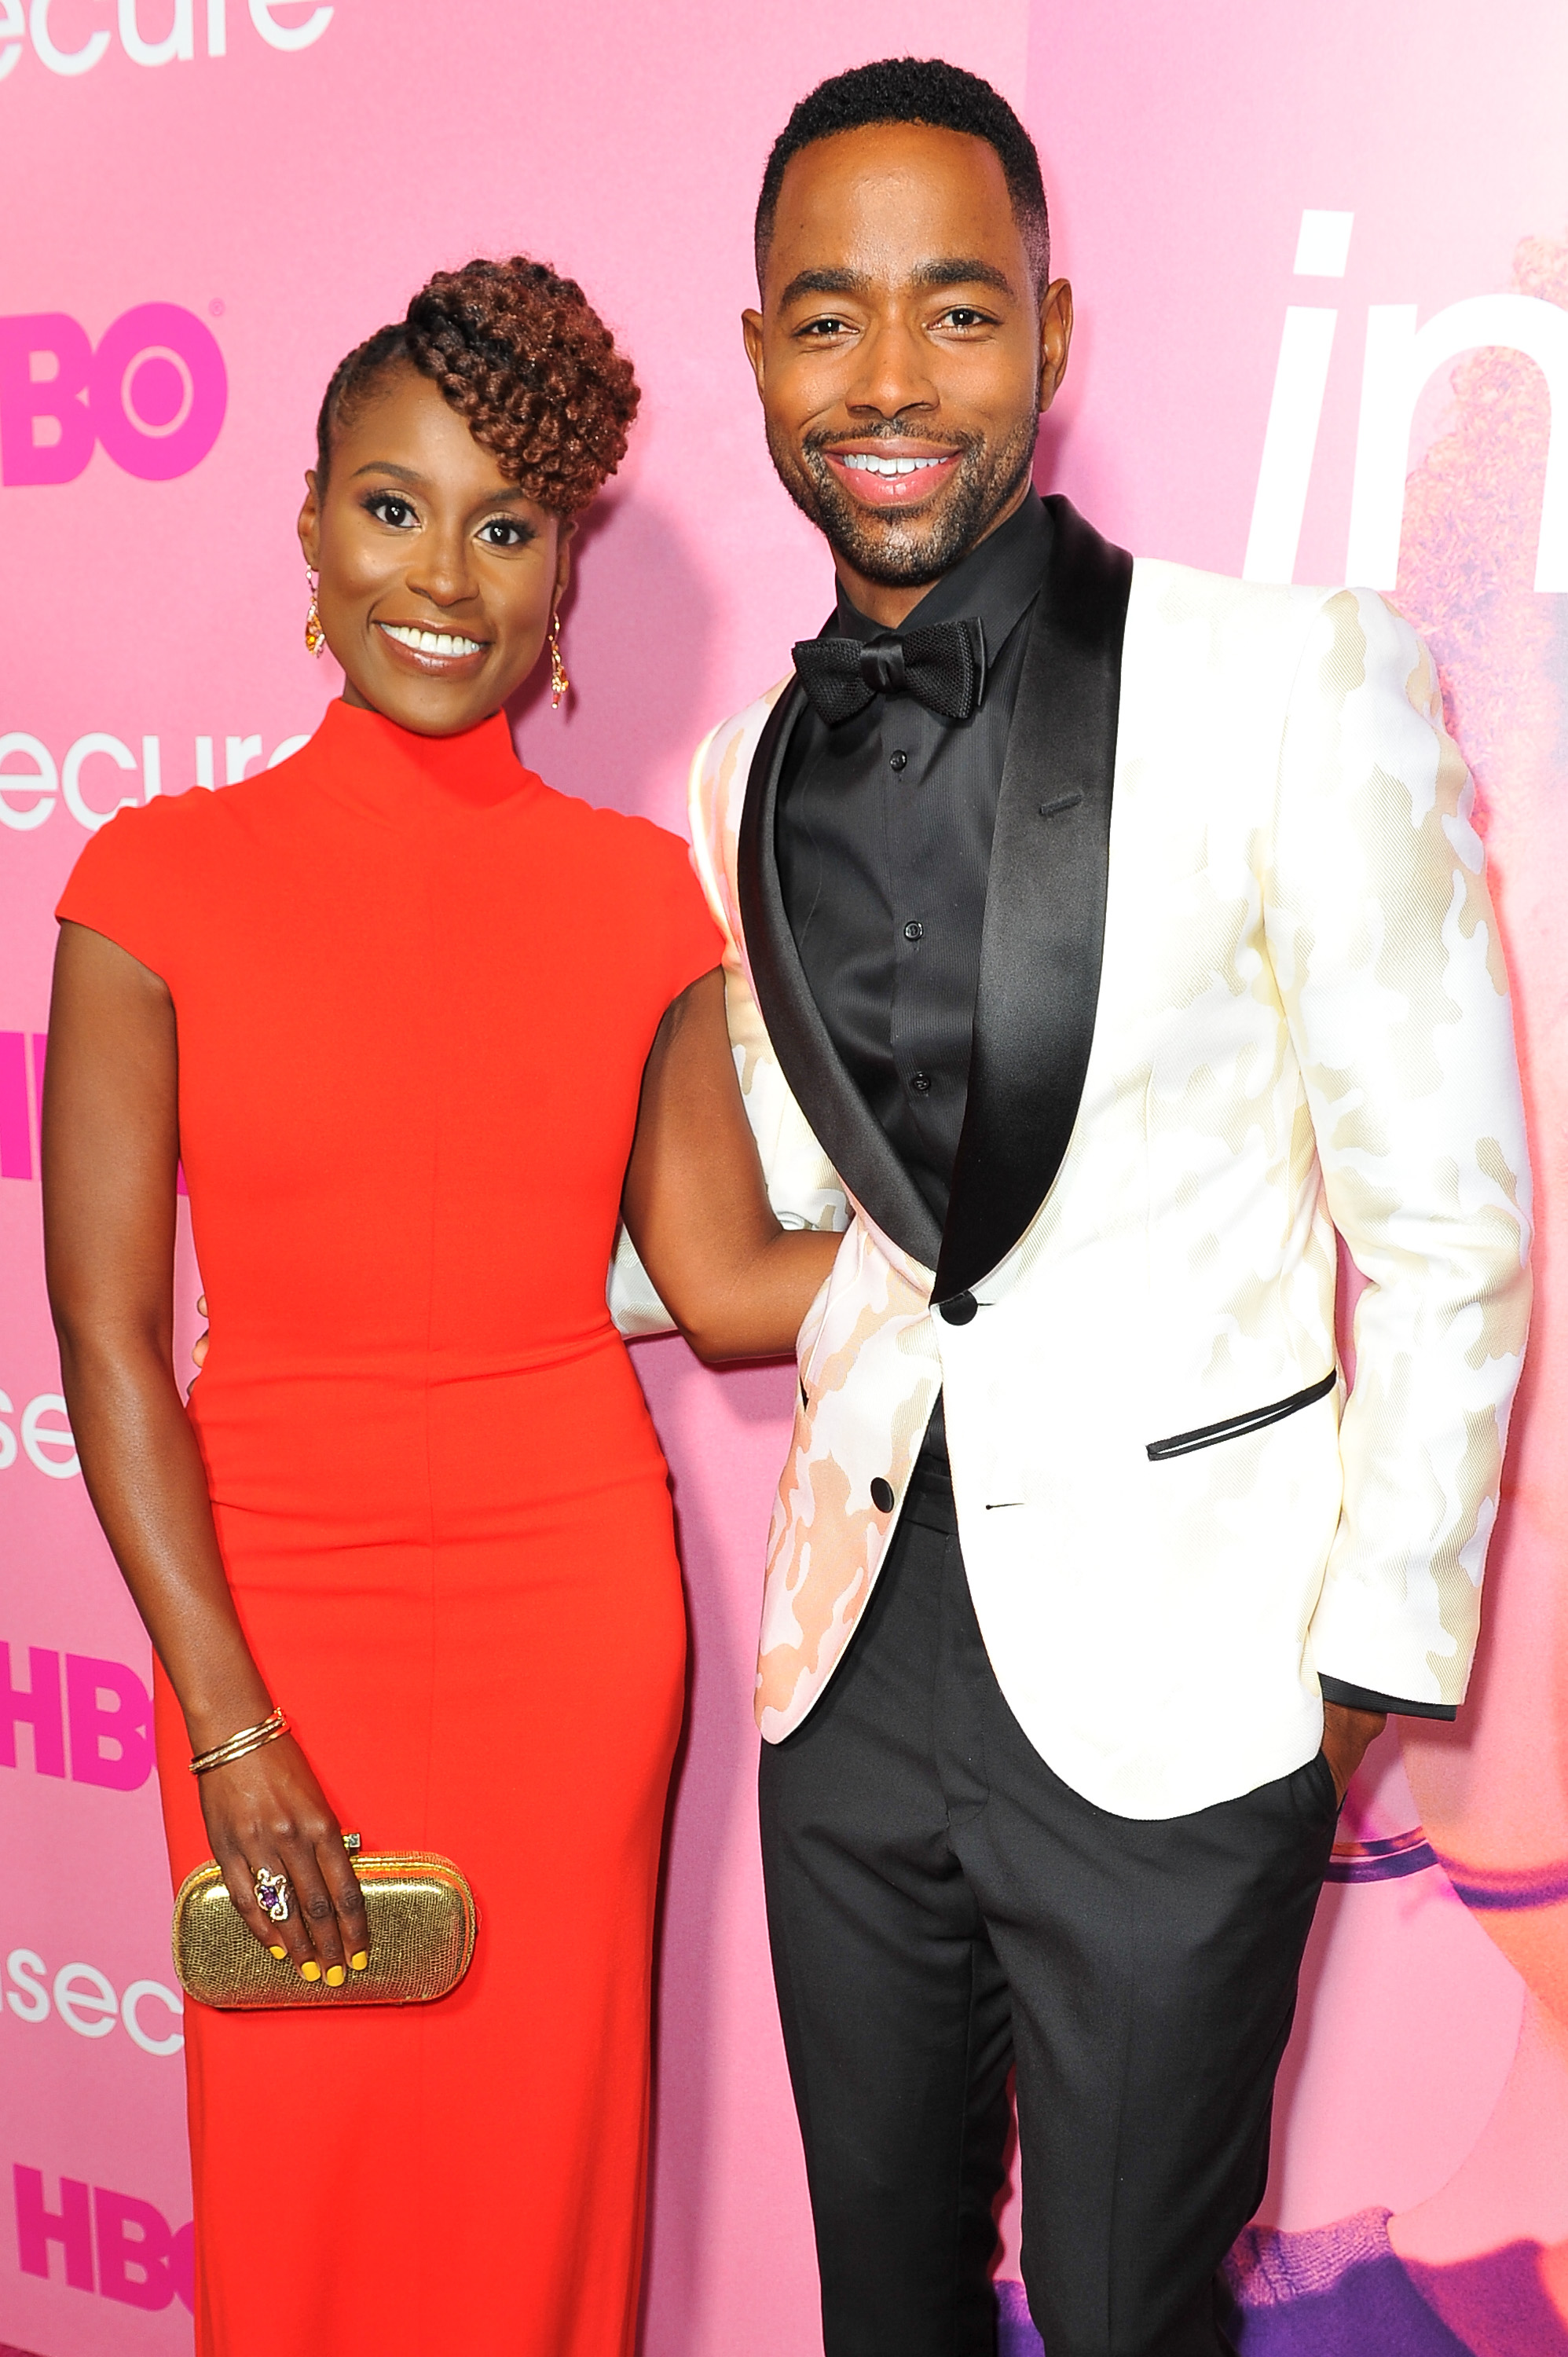 Premiere Of HBO's 'Insecure' - Red Carpet